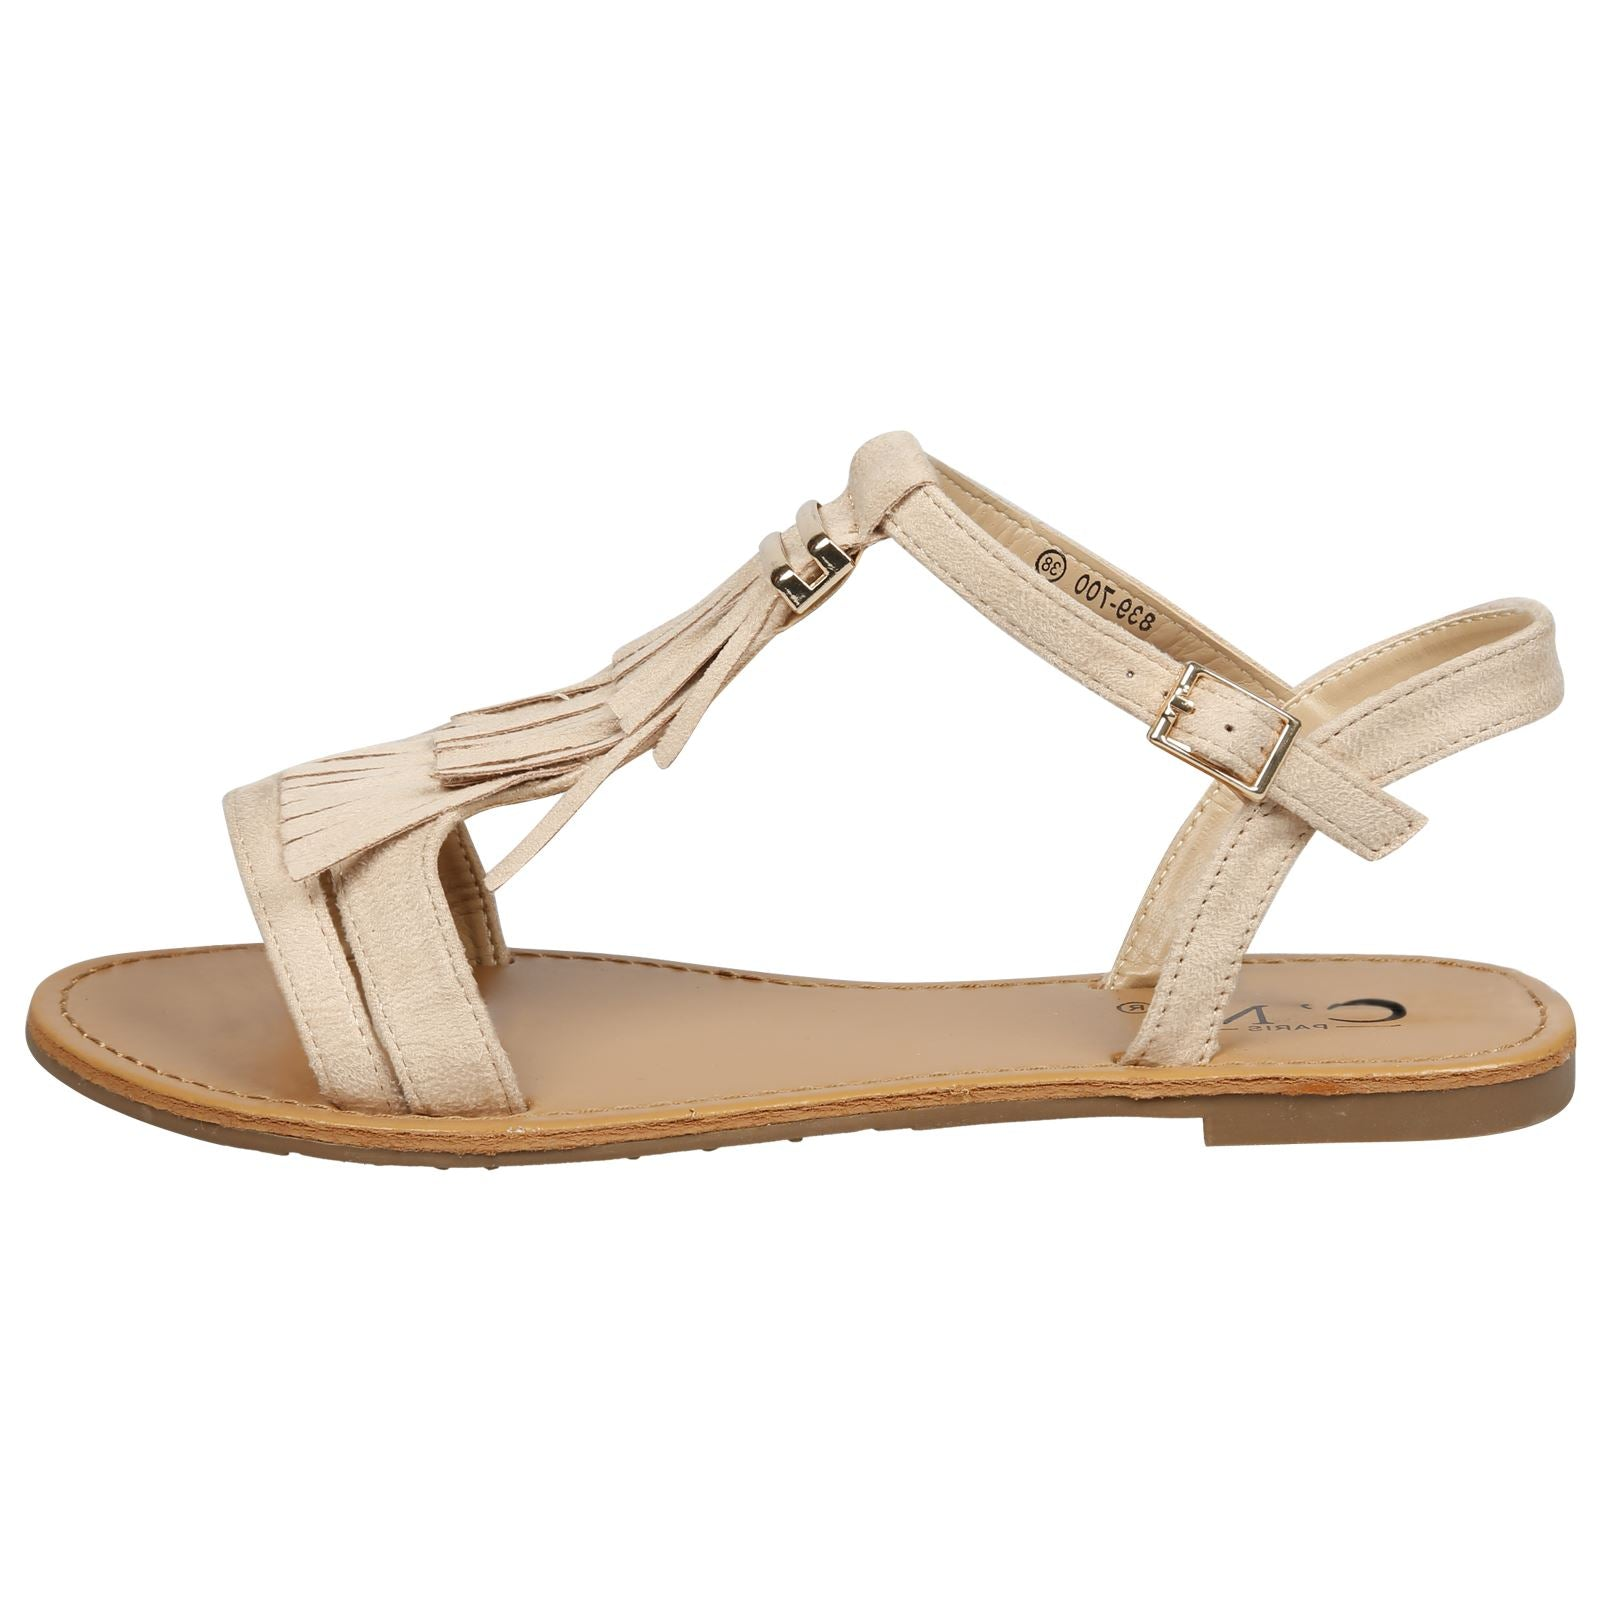 Luisa Fringed T Bar Sandals in Beige Faux Suede